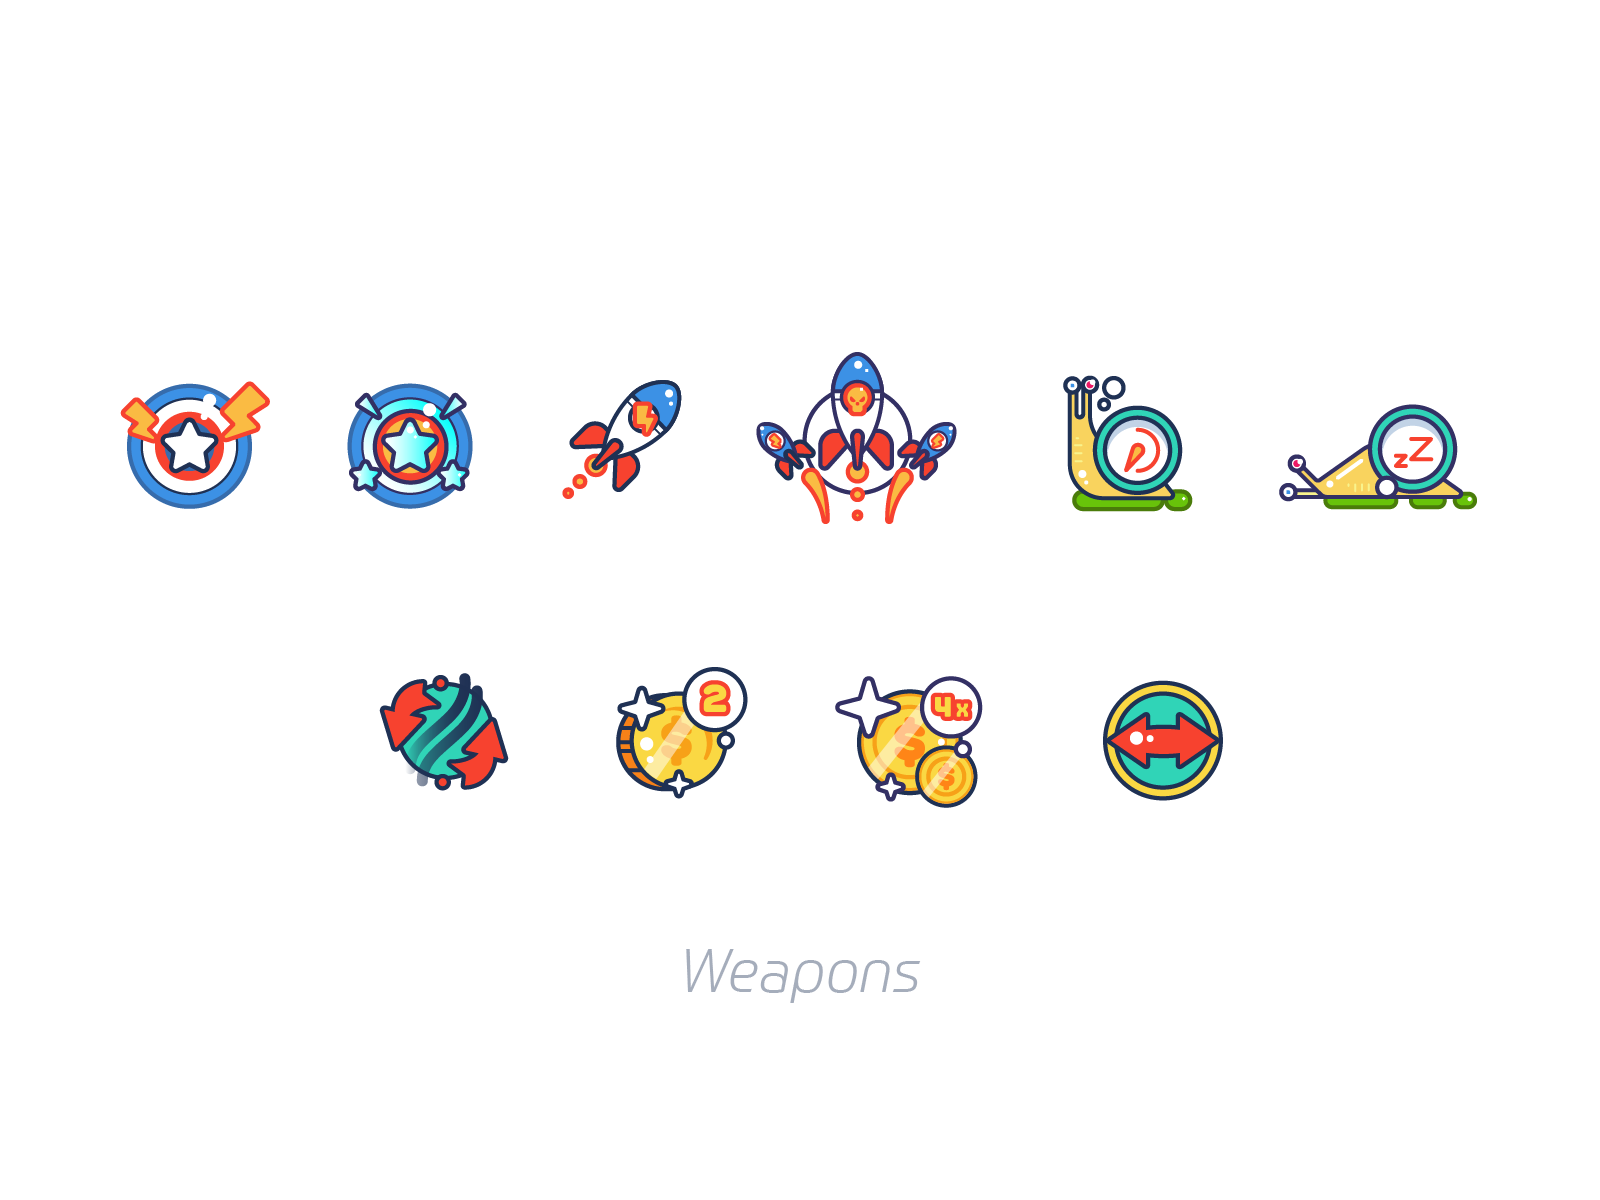 weapons game design illustration